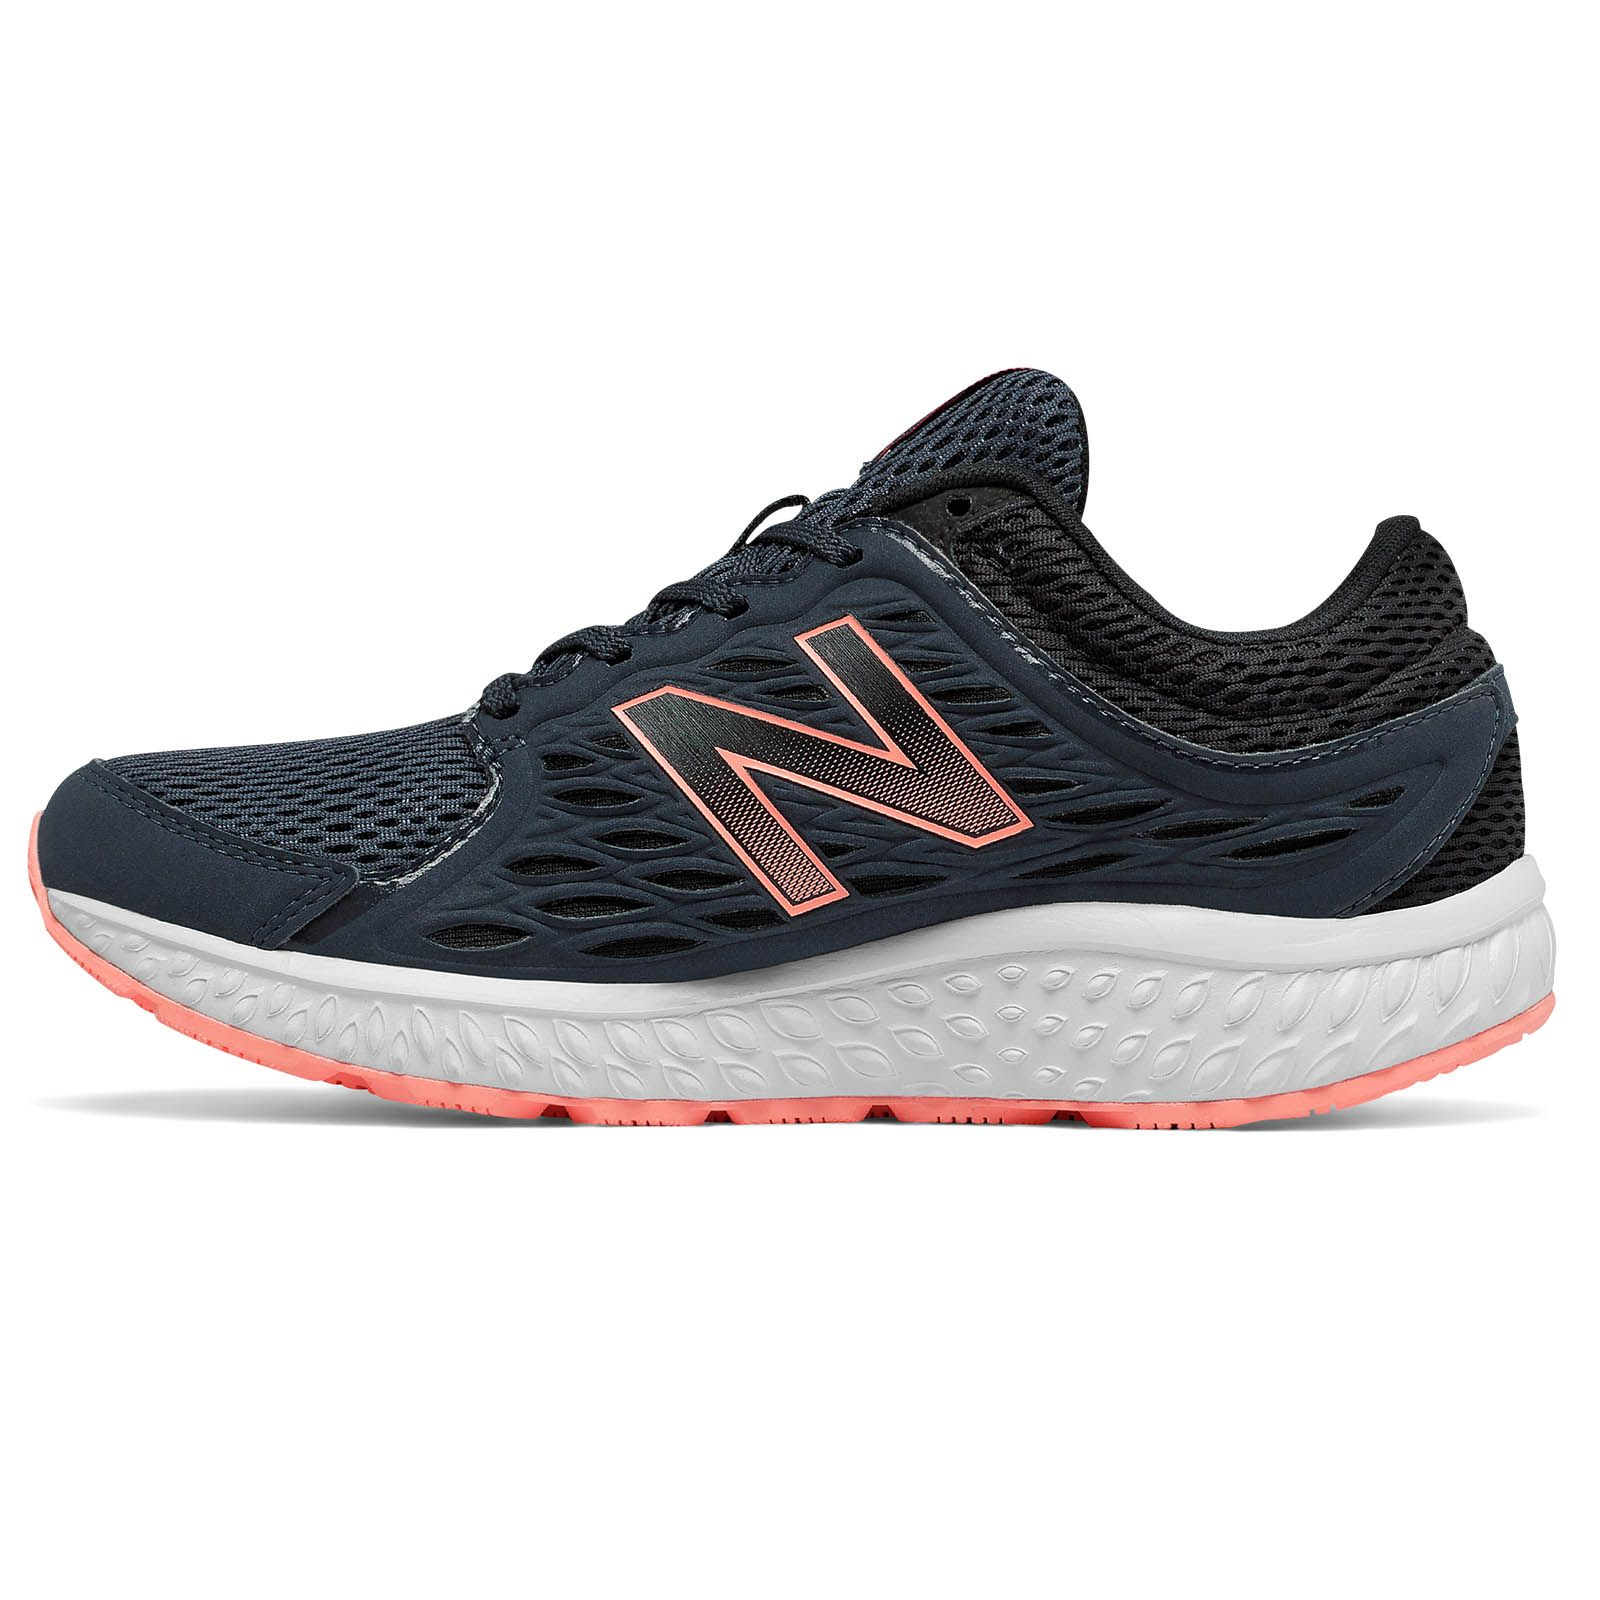 new balance 420 v3 ladies running shoes. Black Bedroom Furniture Sets. Home Design Ideas